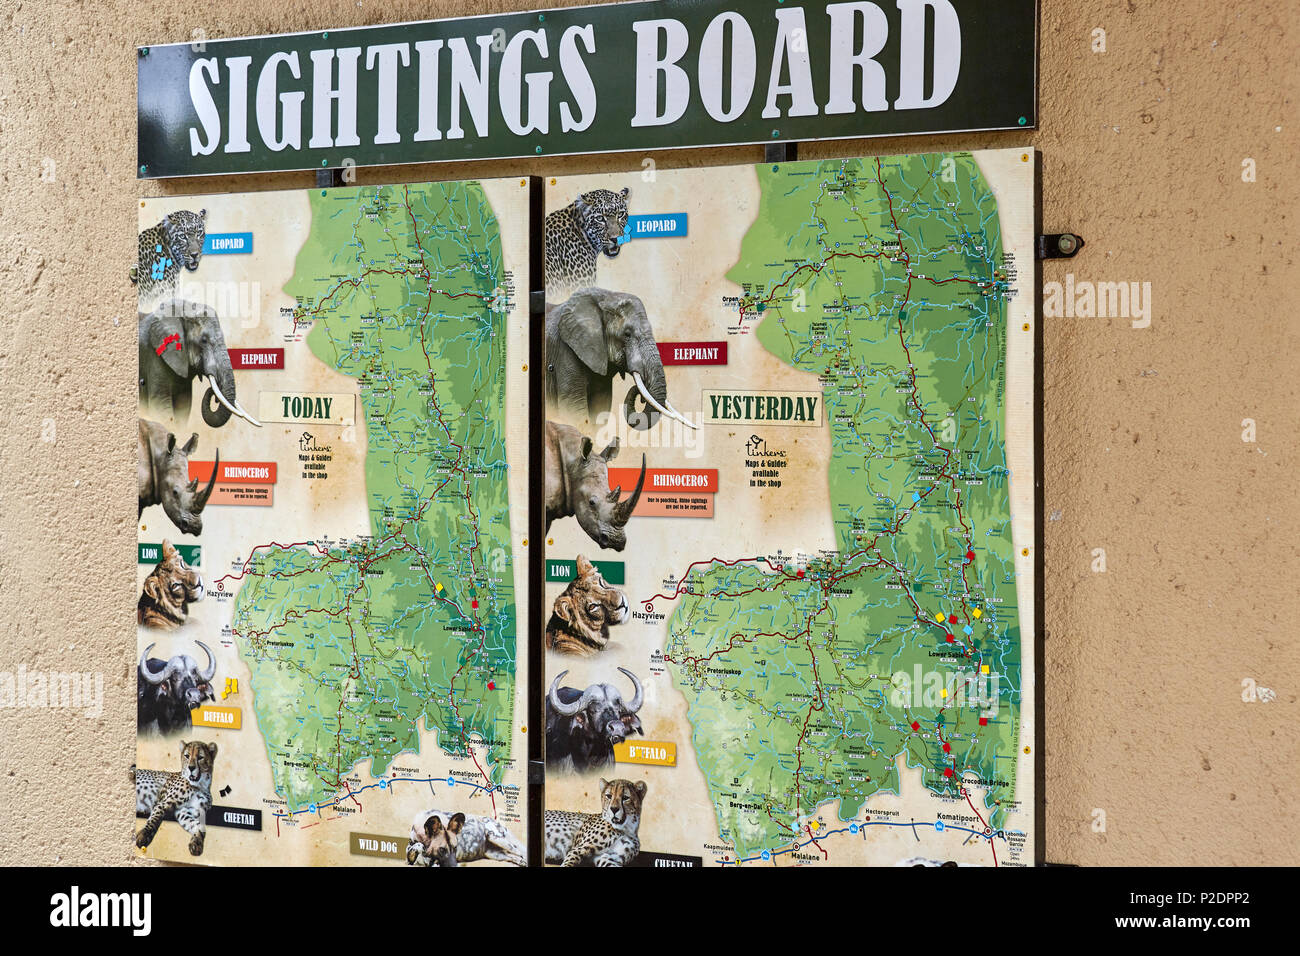 Sighting board in the Kruger National Park Game Reserve South Africa - Stock Image